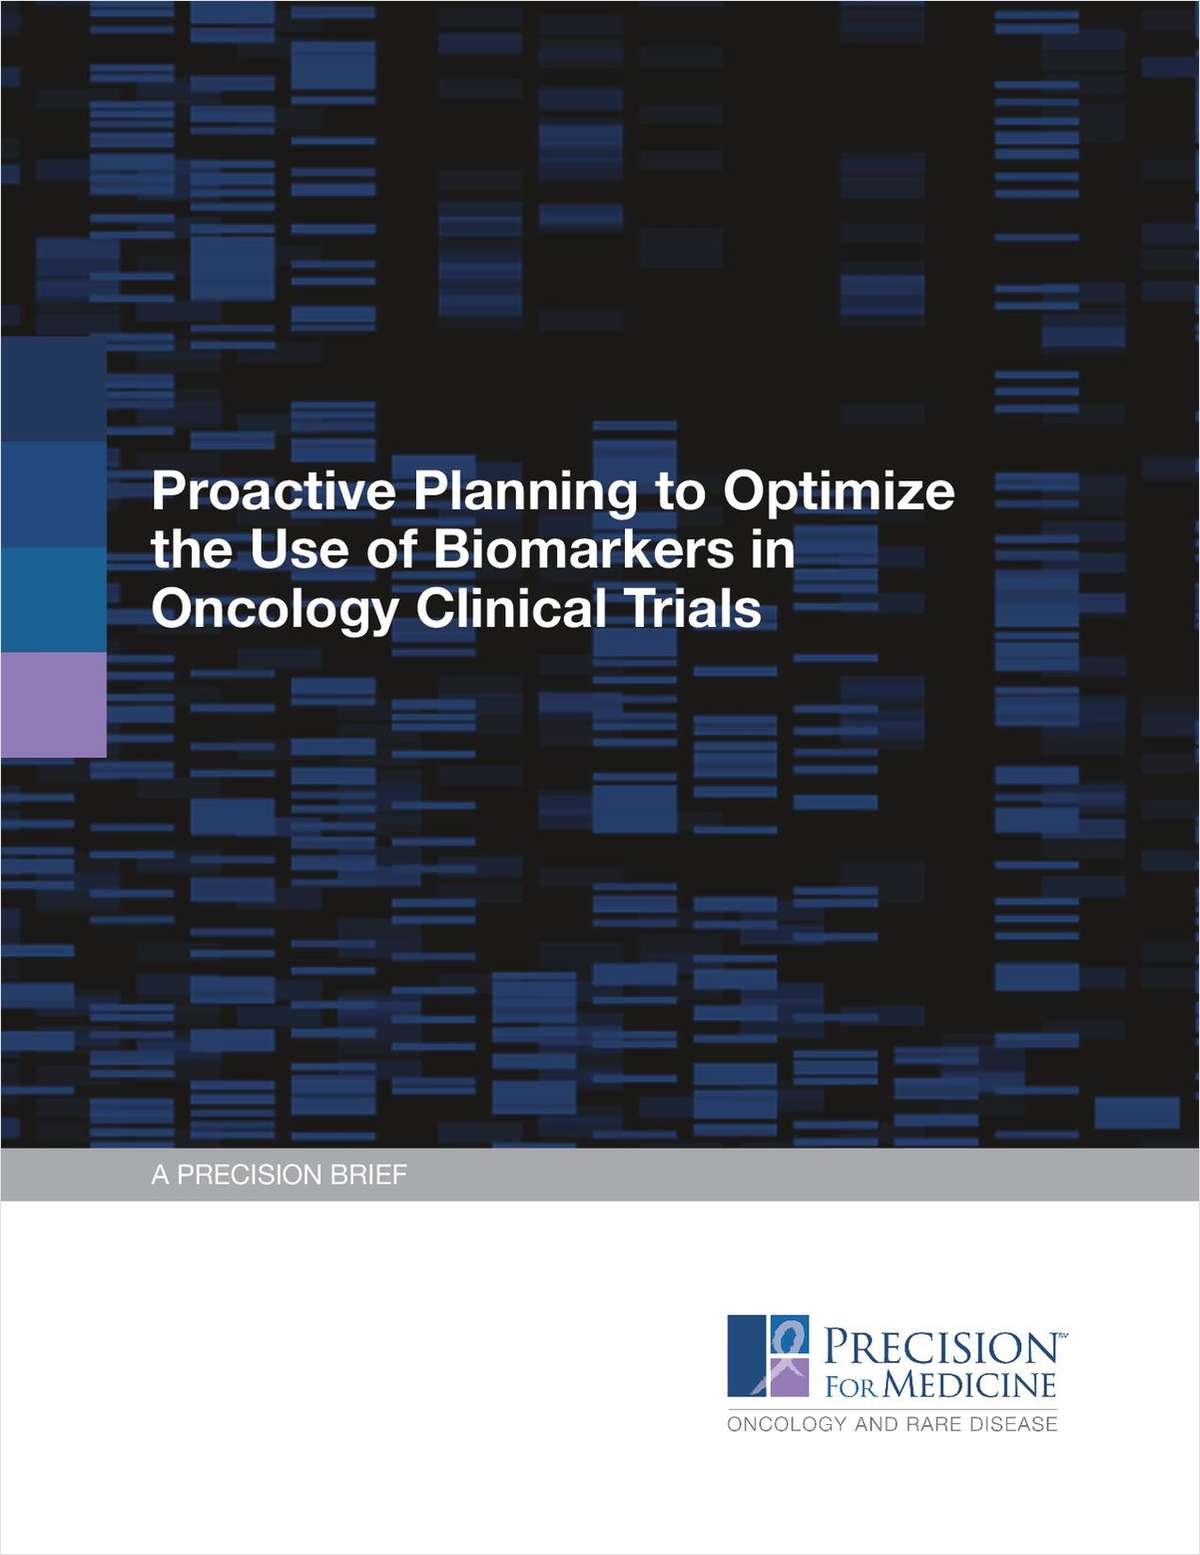 Proactive Planning to Optimize the Use of Biomarkers in Oncology Clinical Trials